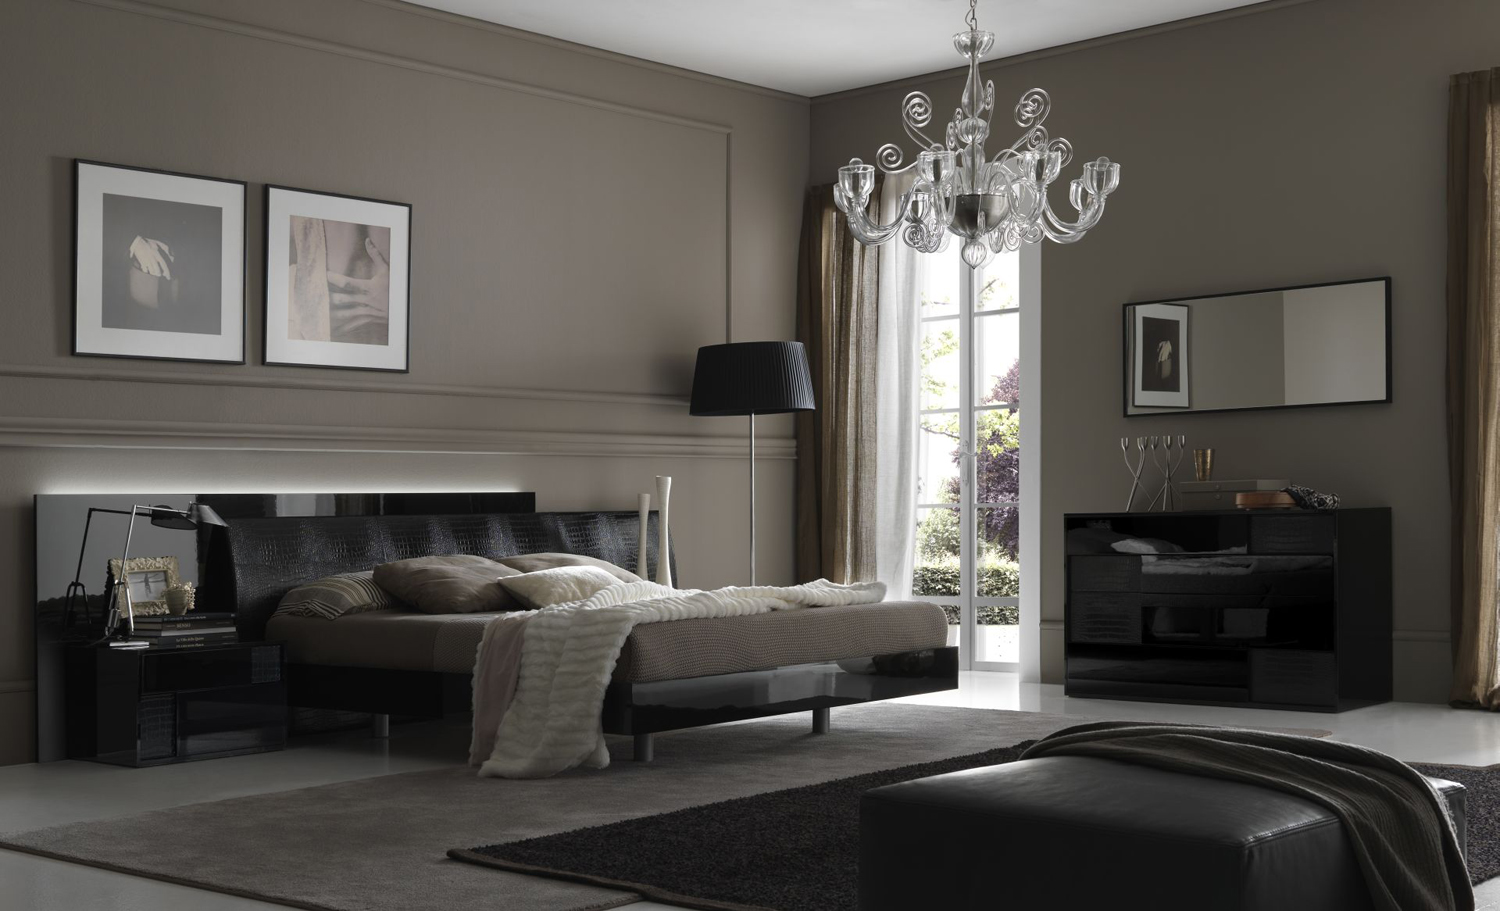 Ordinaire Adorable Design Of The Gray Bedroom Ideas With Grey Wall Ideas Added With  Grey Rugs And